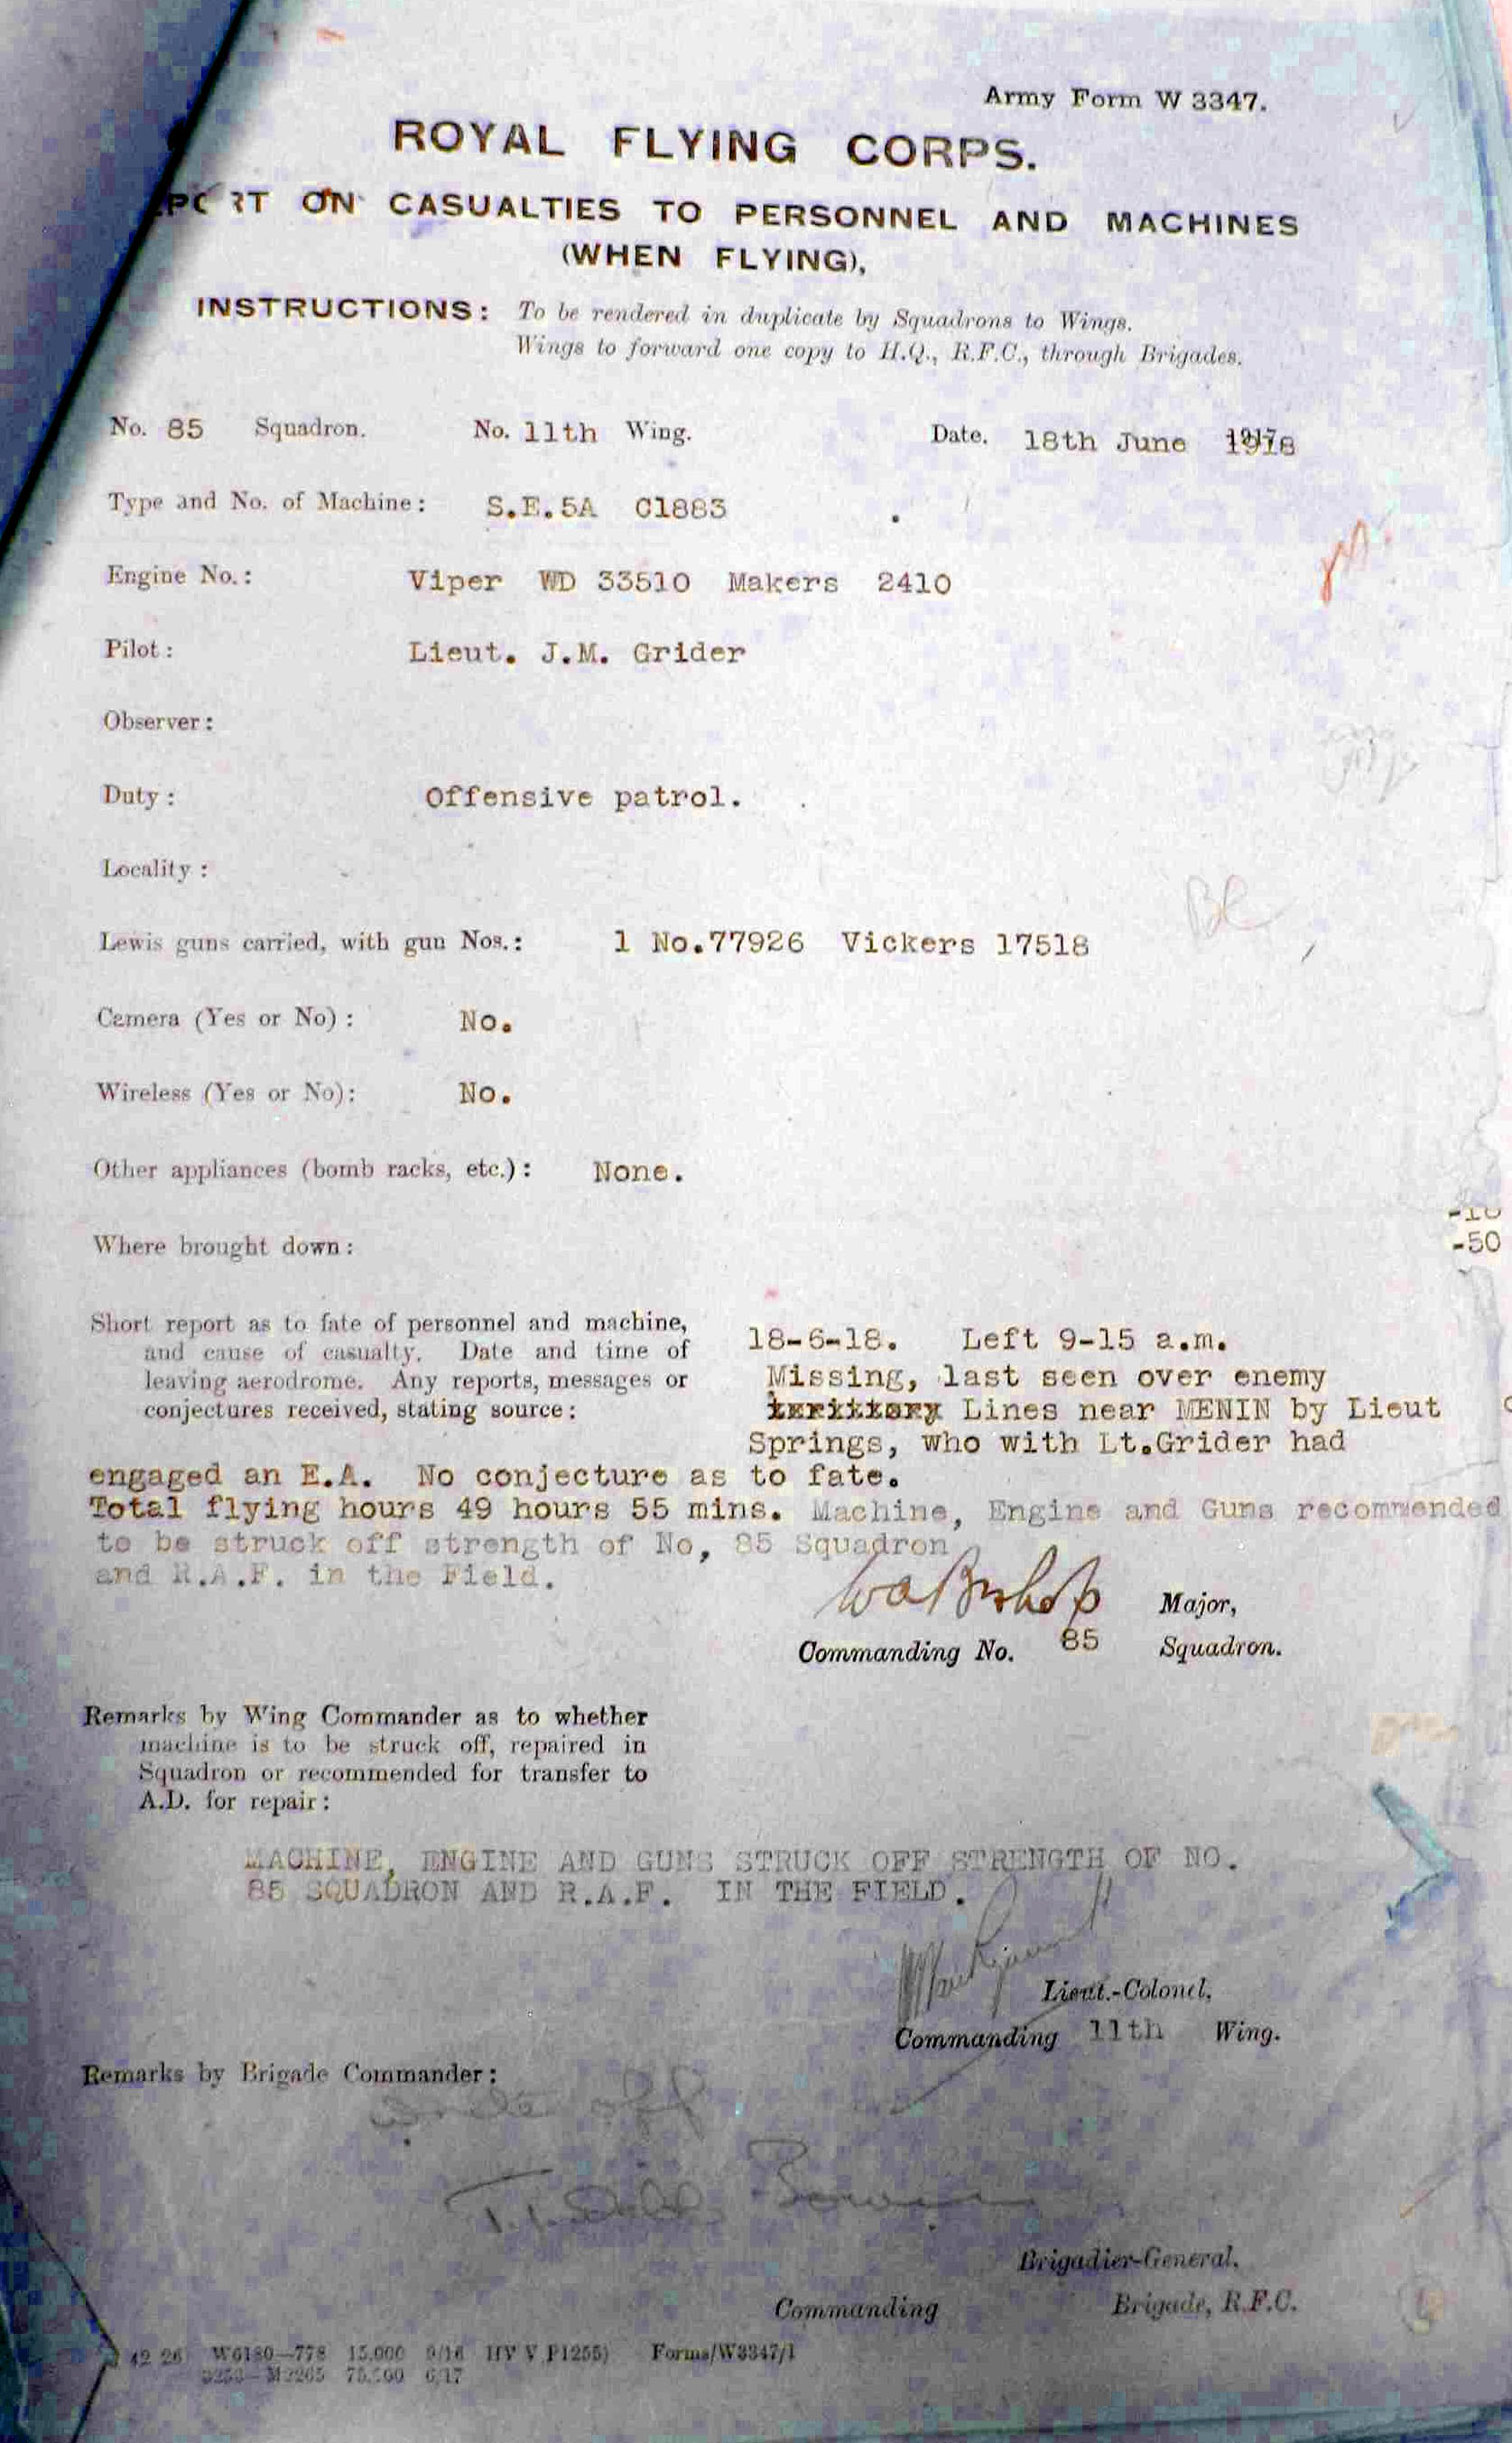 An RFC form, Report on Casualties to Personnel and Machines with information typed in about Grider and the disposition of his SE5a.